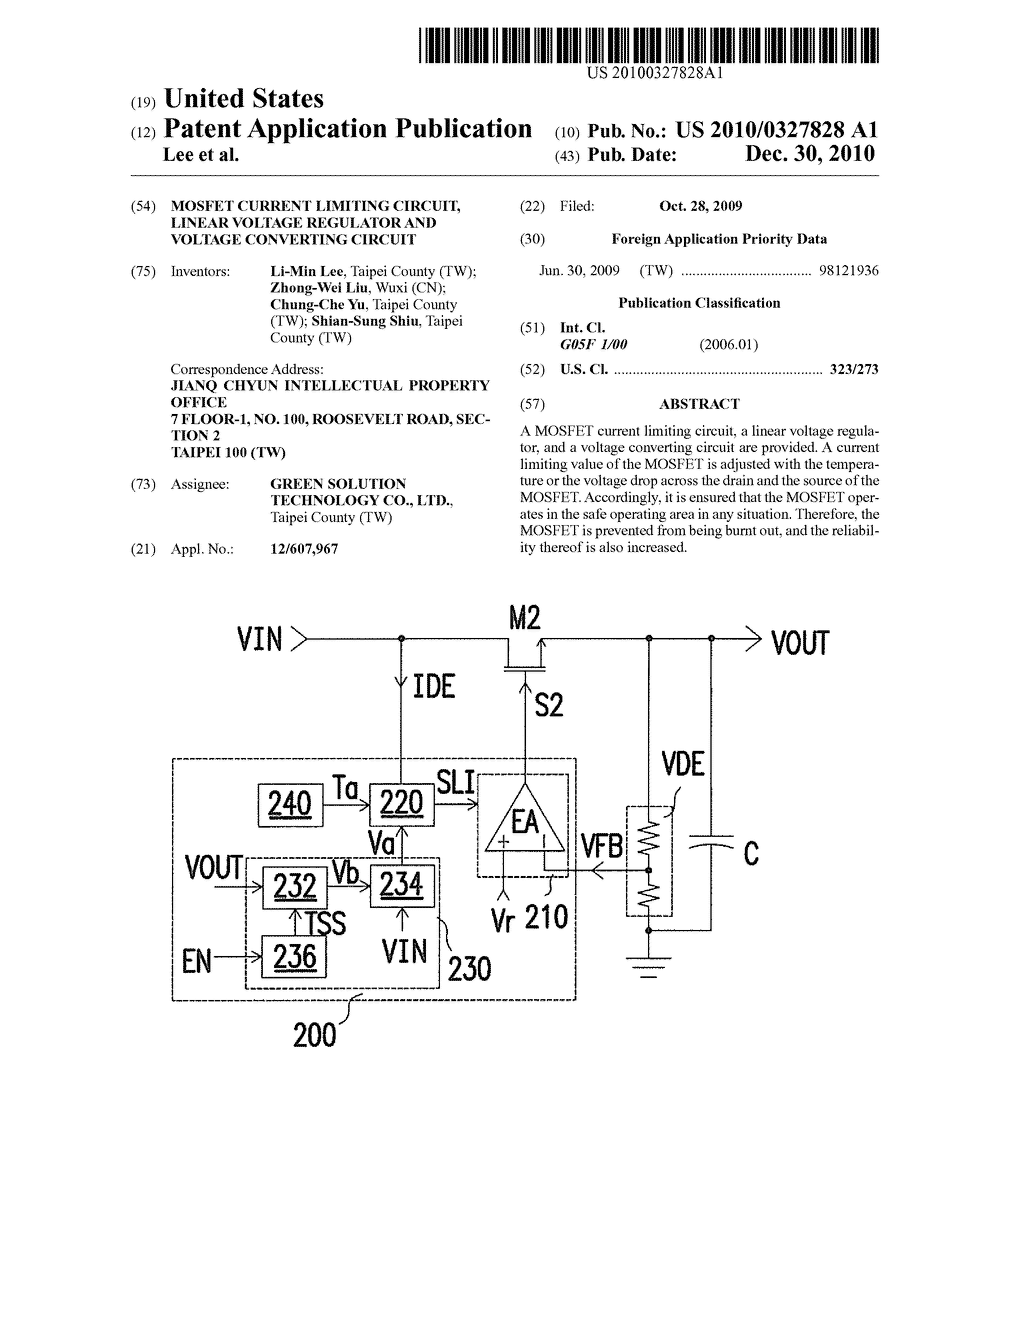 Mosfet Current Limiting Circuit Linear Voltage Regulator And Converting Diagram Schematic Image 01